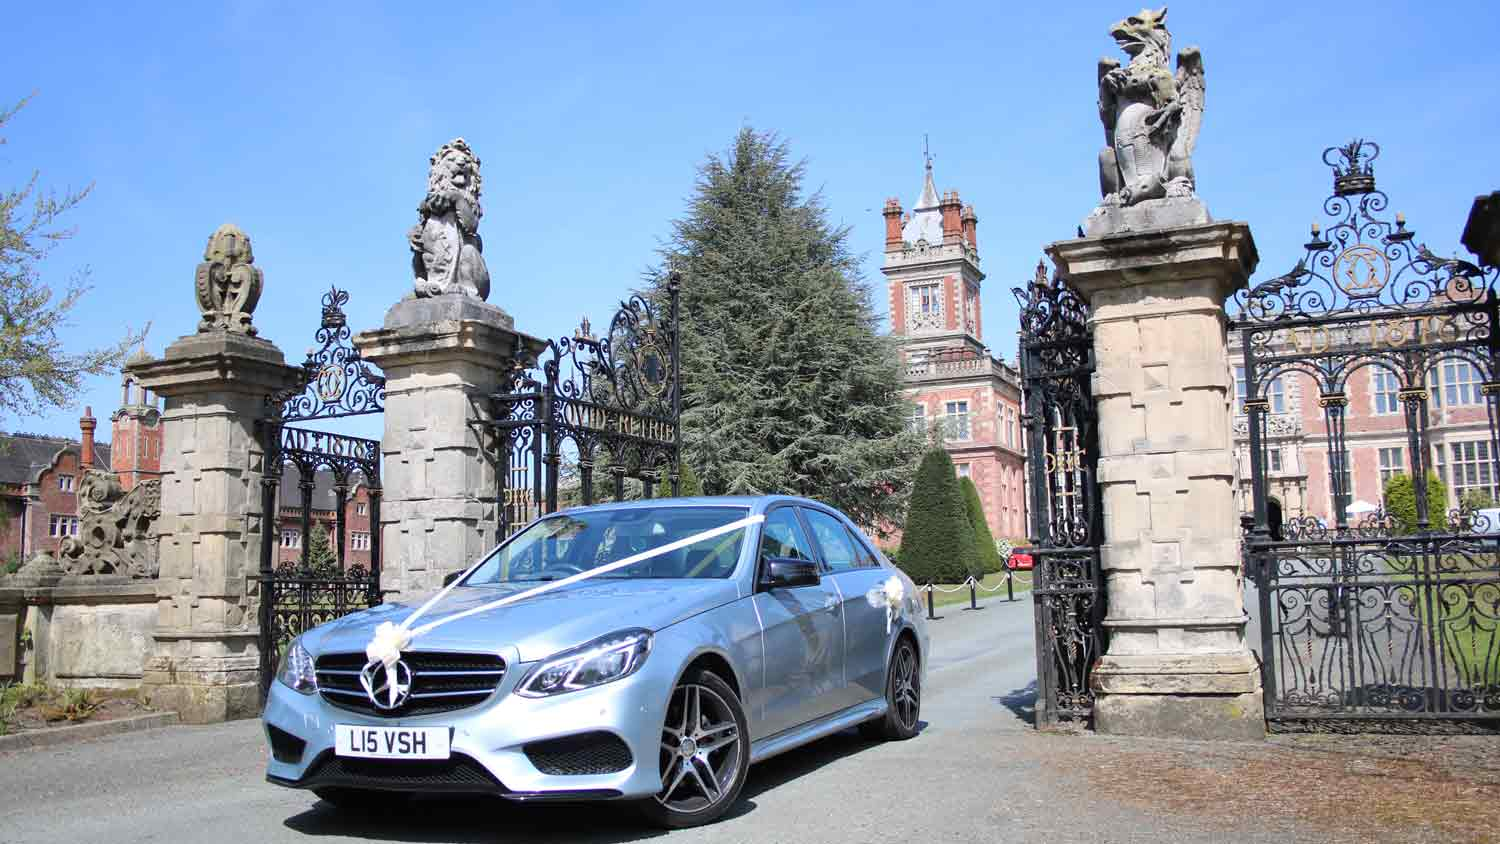 Wedding car hire in Stoke-on-Trent and Staffordshire